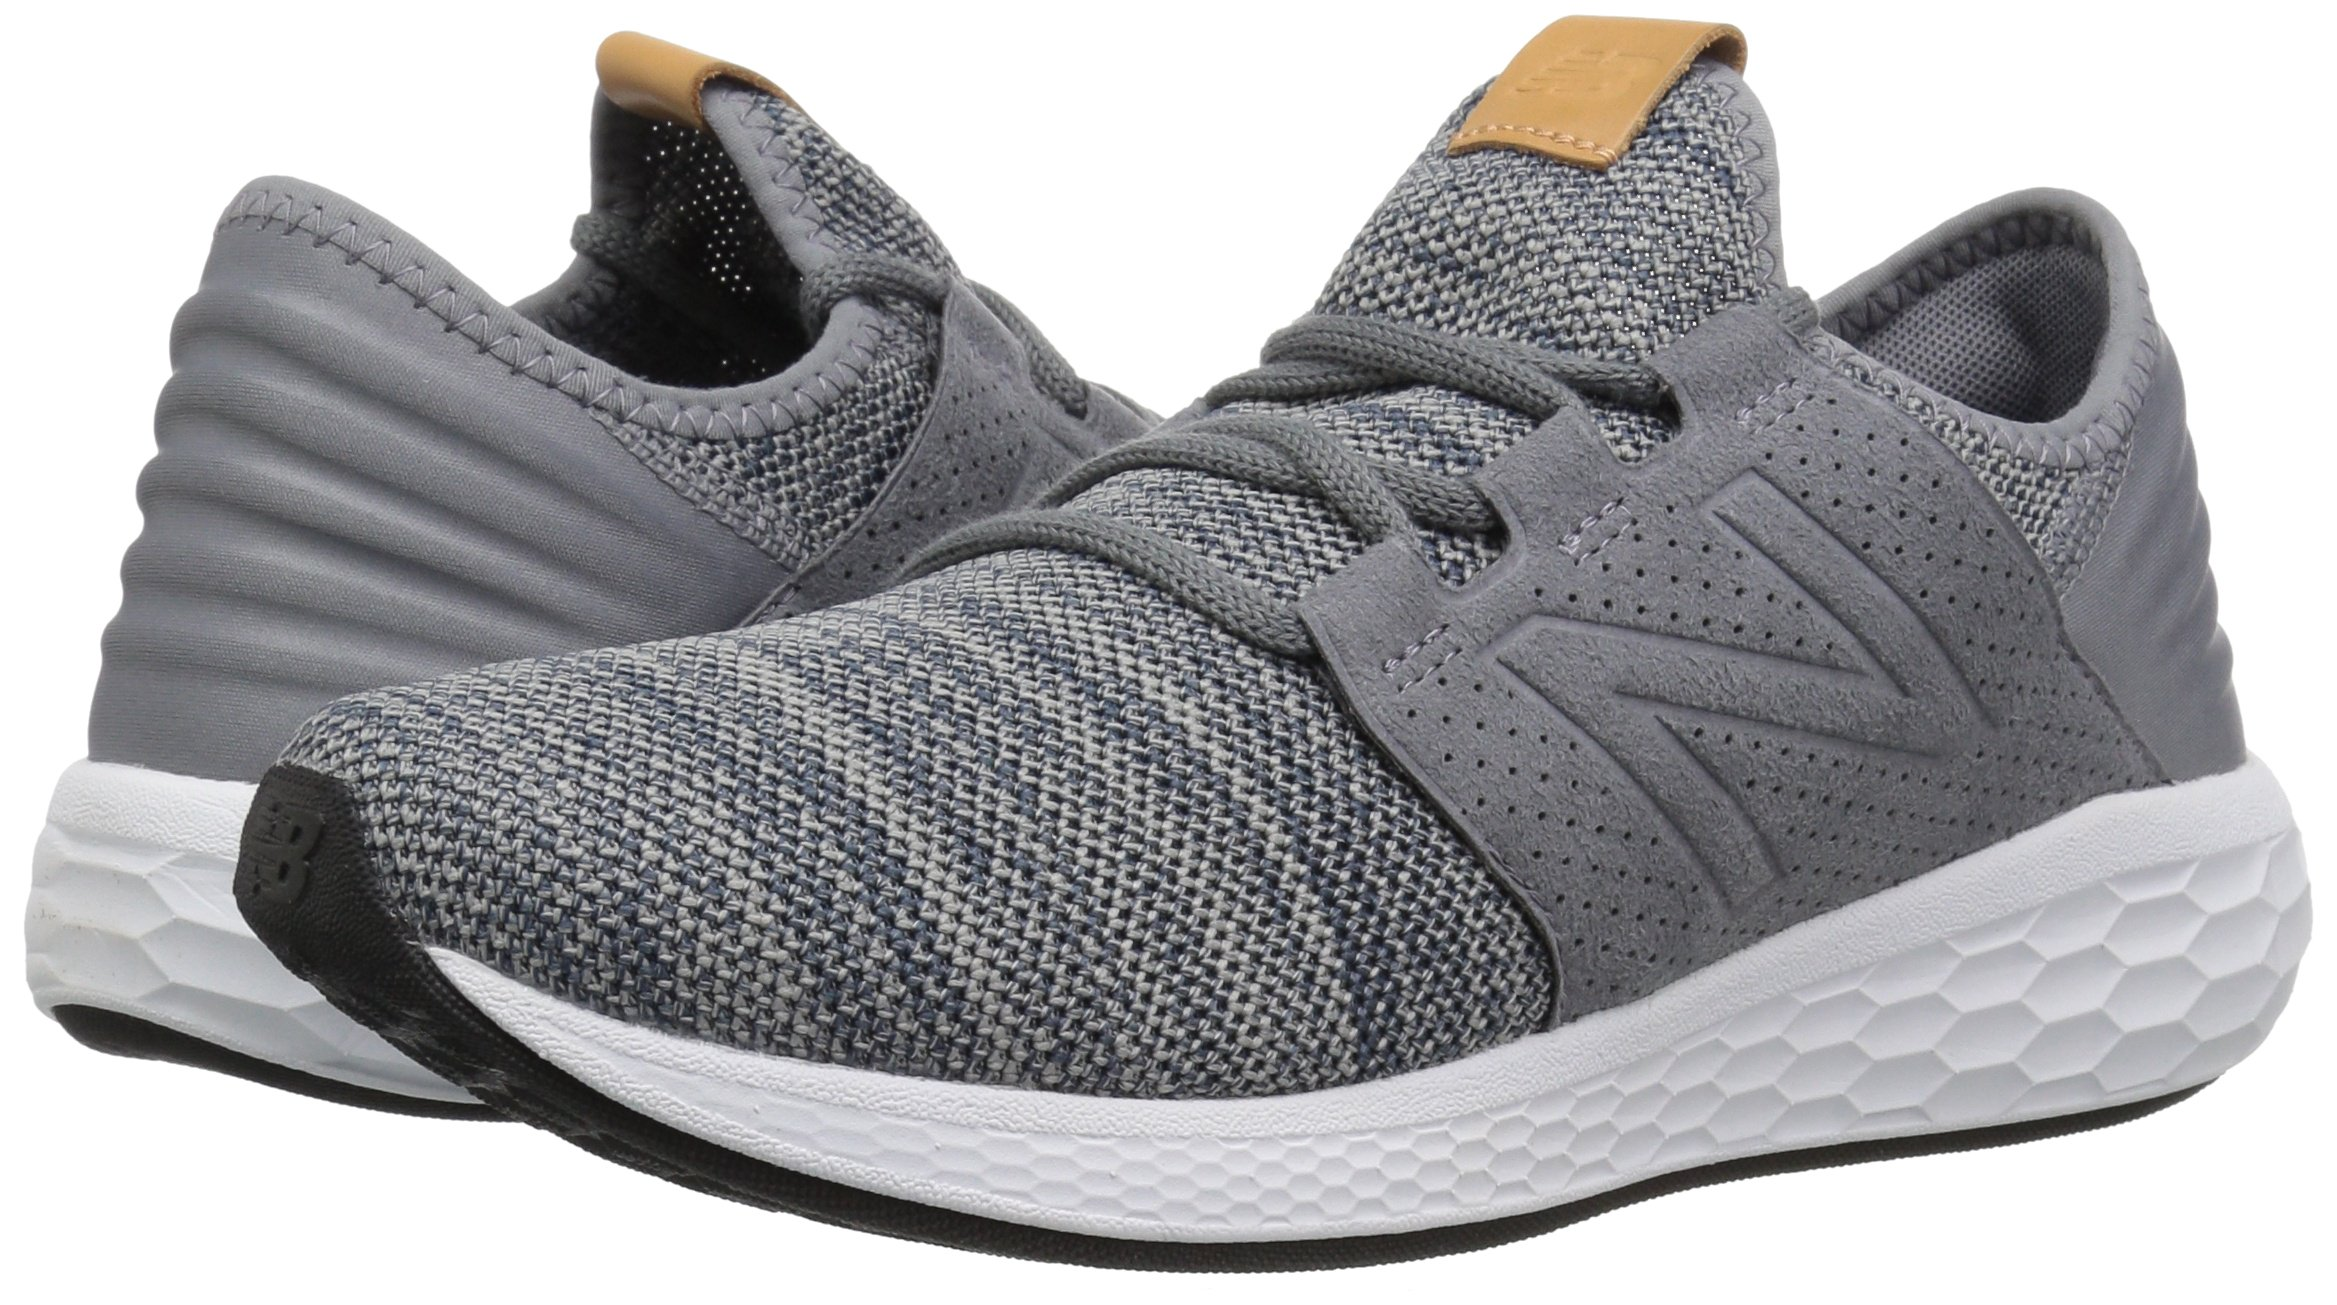 New Balance Men's Cruz V2 Fresh Foam Running Shoe, Gunmetal / Thunder, 7 D US by New Balance (Image #5)